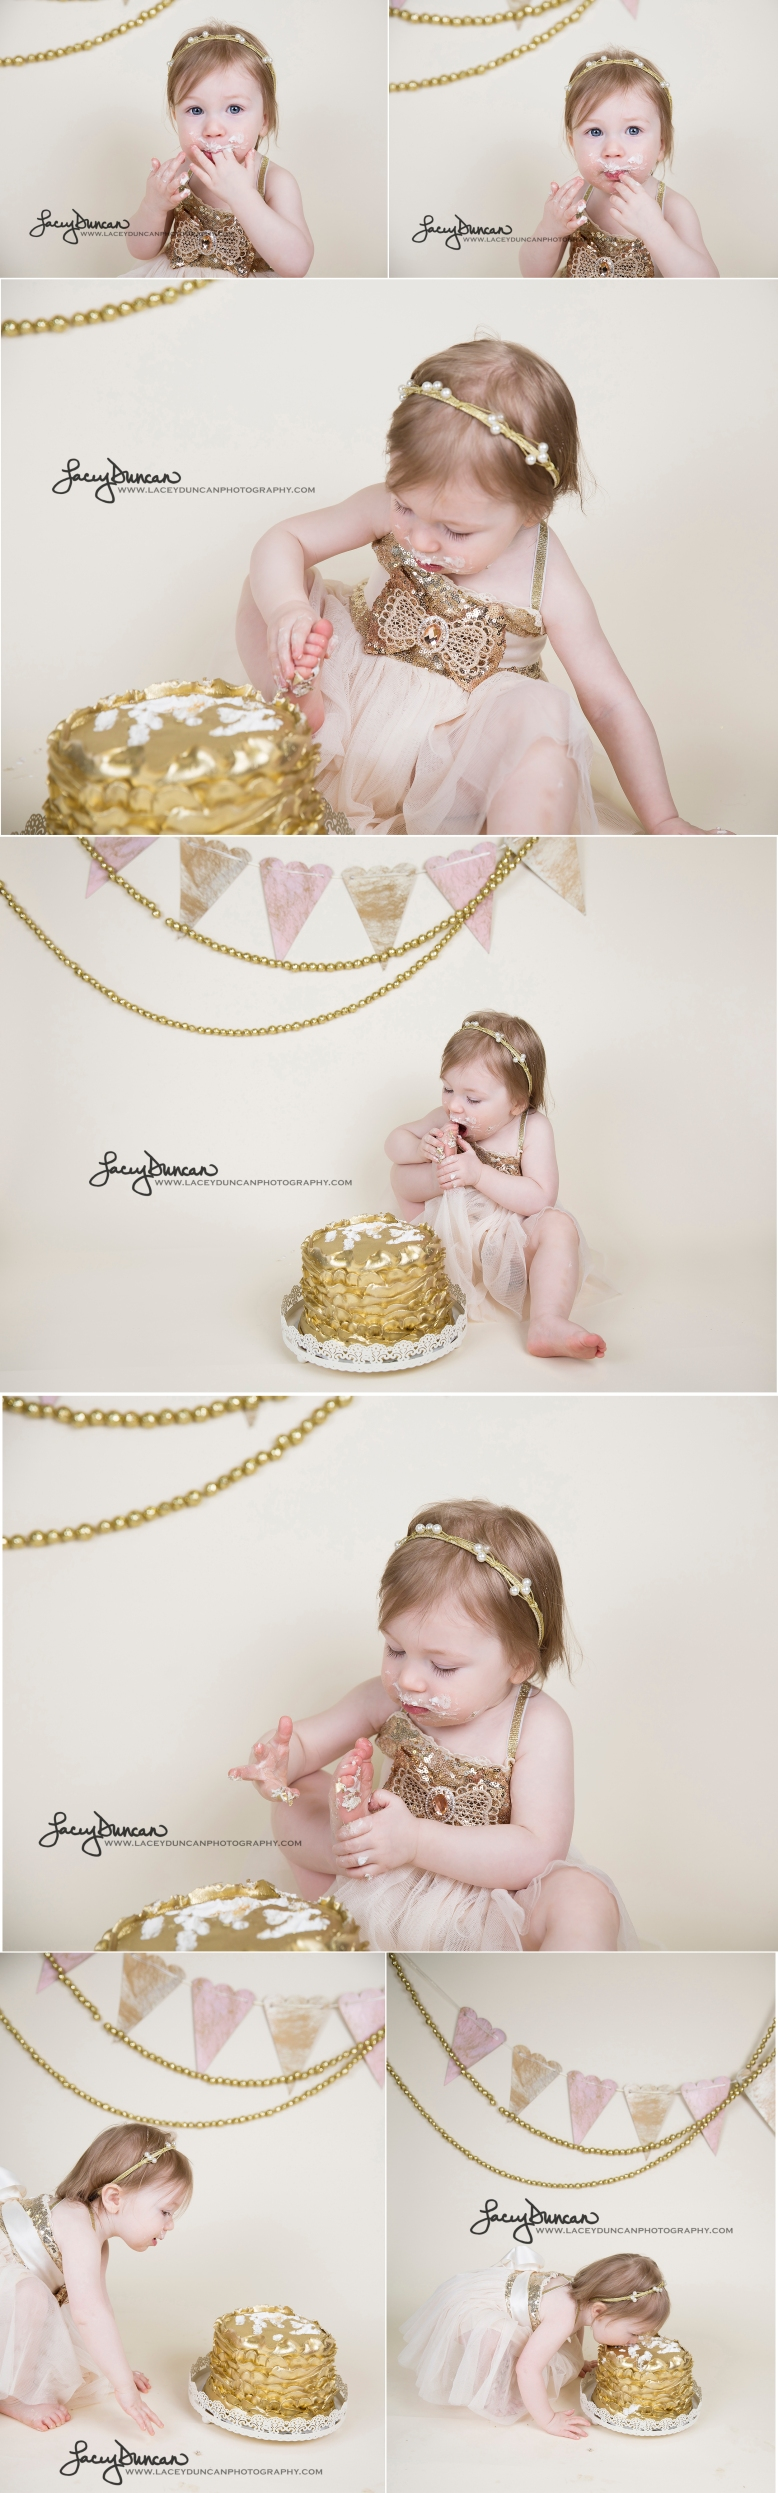 097_little_rock_photographers_smash_cake_girl_pink_gold